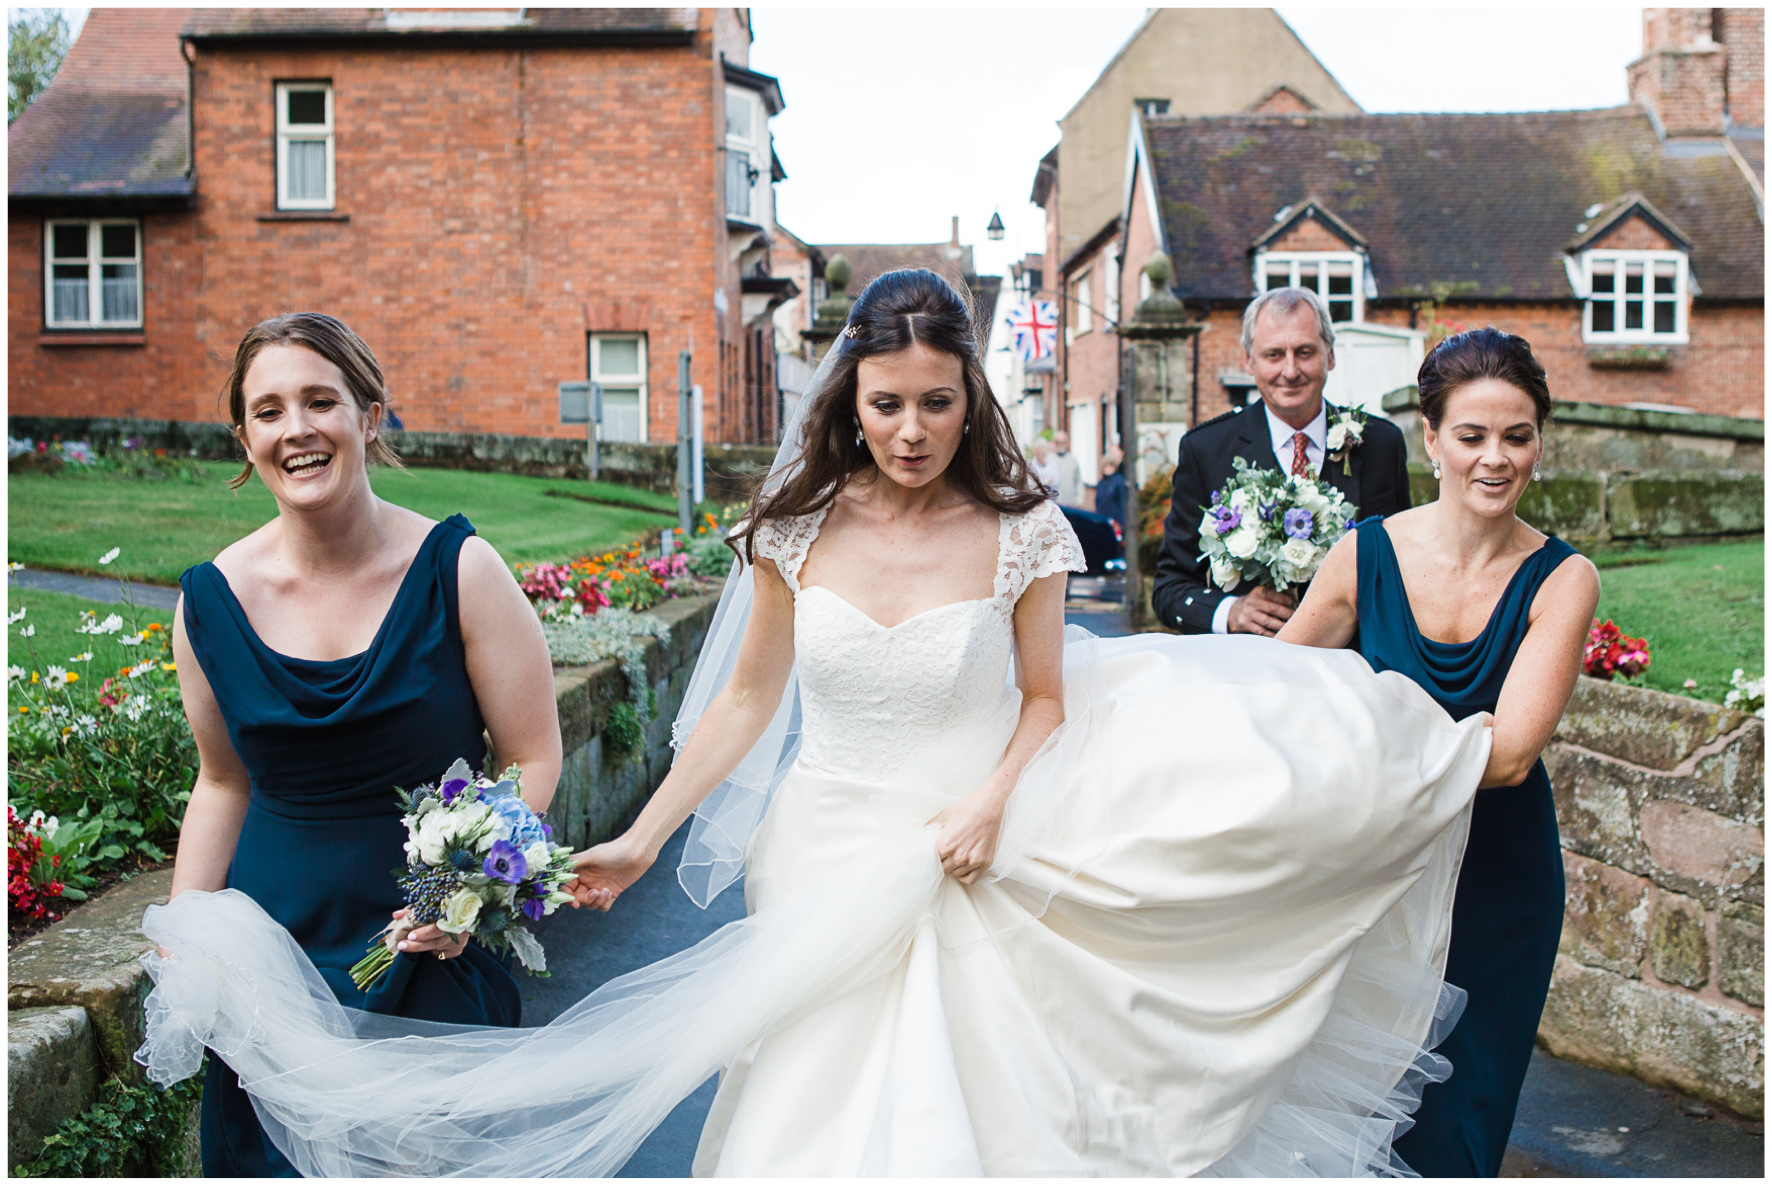 Lucy Davenport Photography, home wedding, marquee wedding, Caroline Castigliano, wedding dress, church wedding, bridesmaids, wet wedding